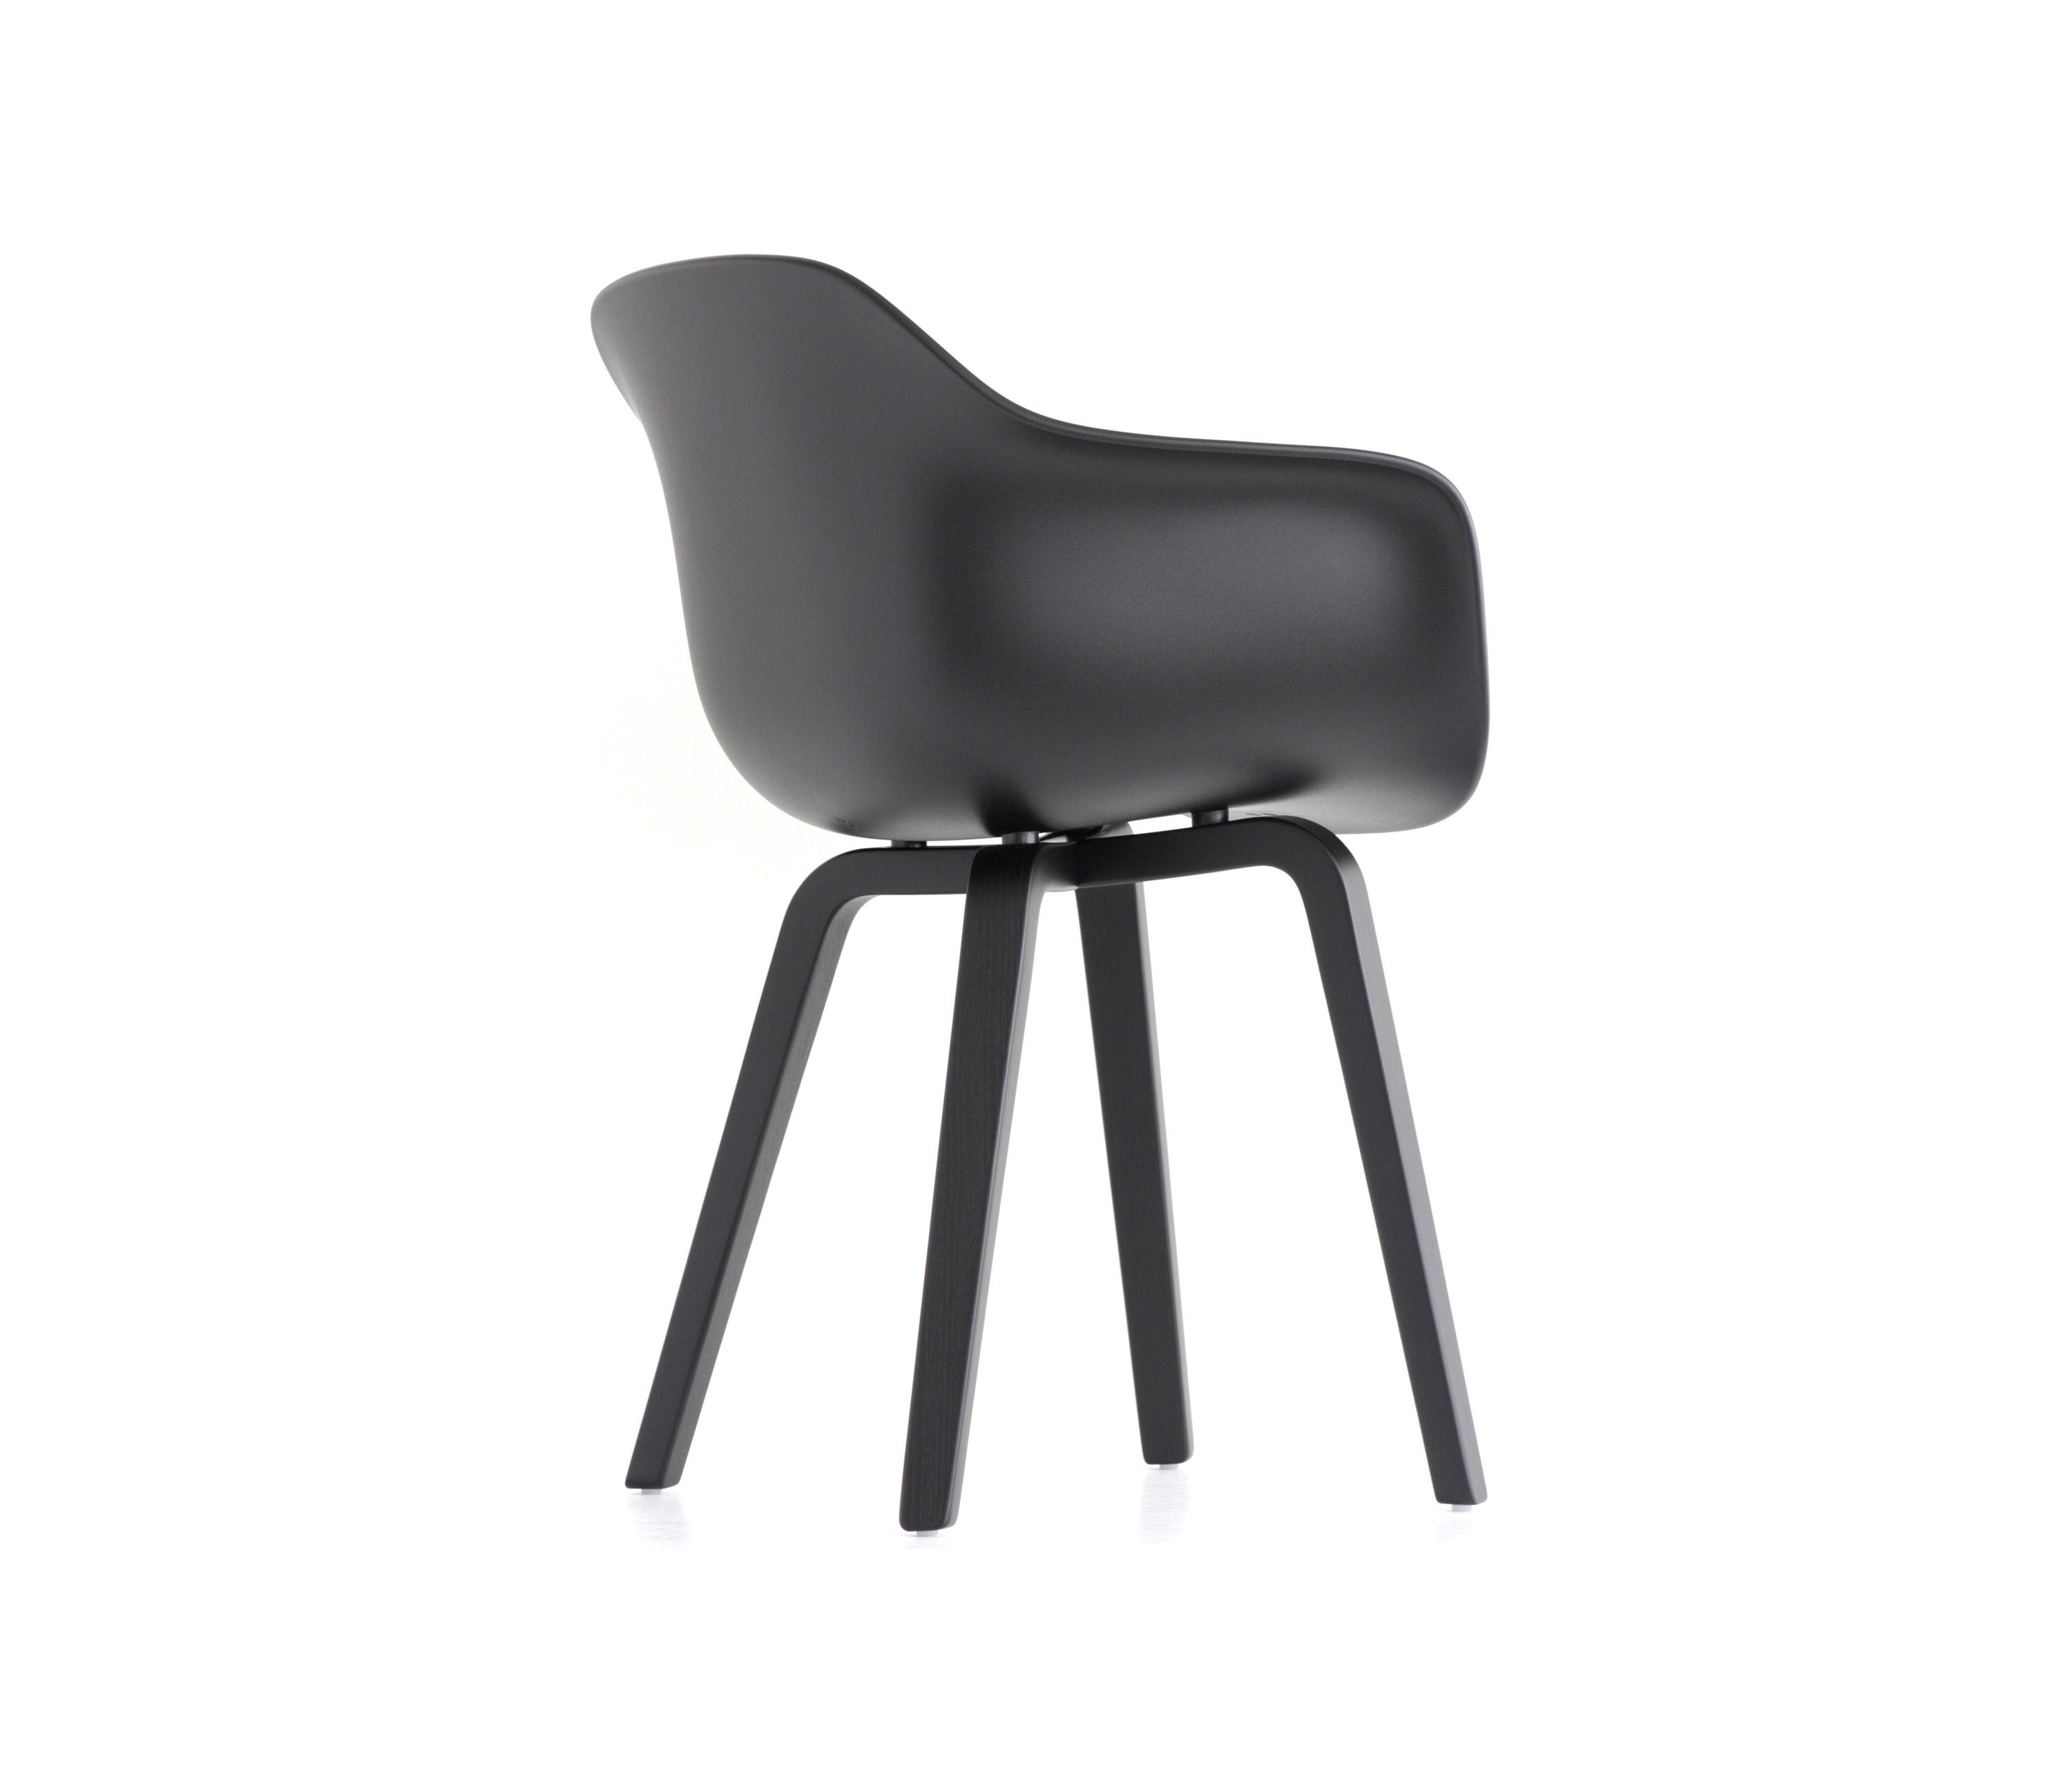 Substance armchair chairs from magis architonic for Magis chair